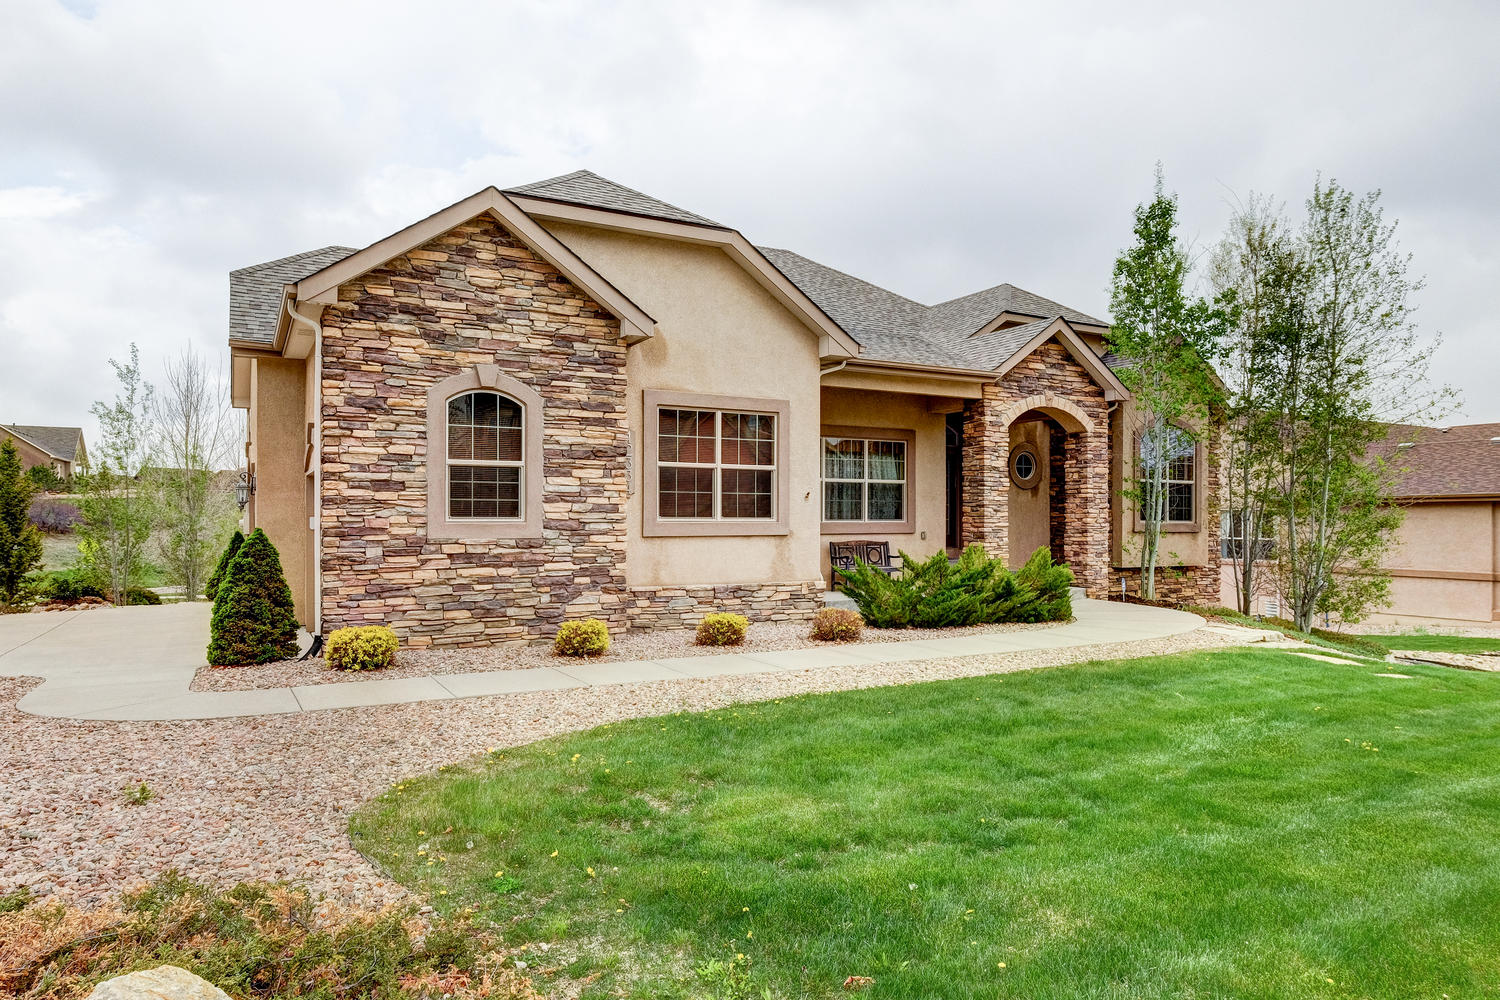 12334 Woodmont Dr, Colorado Springs, CO 80921